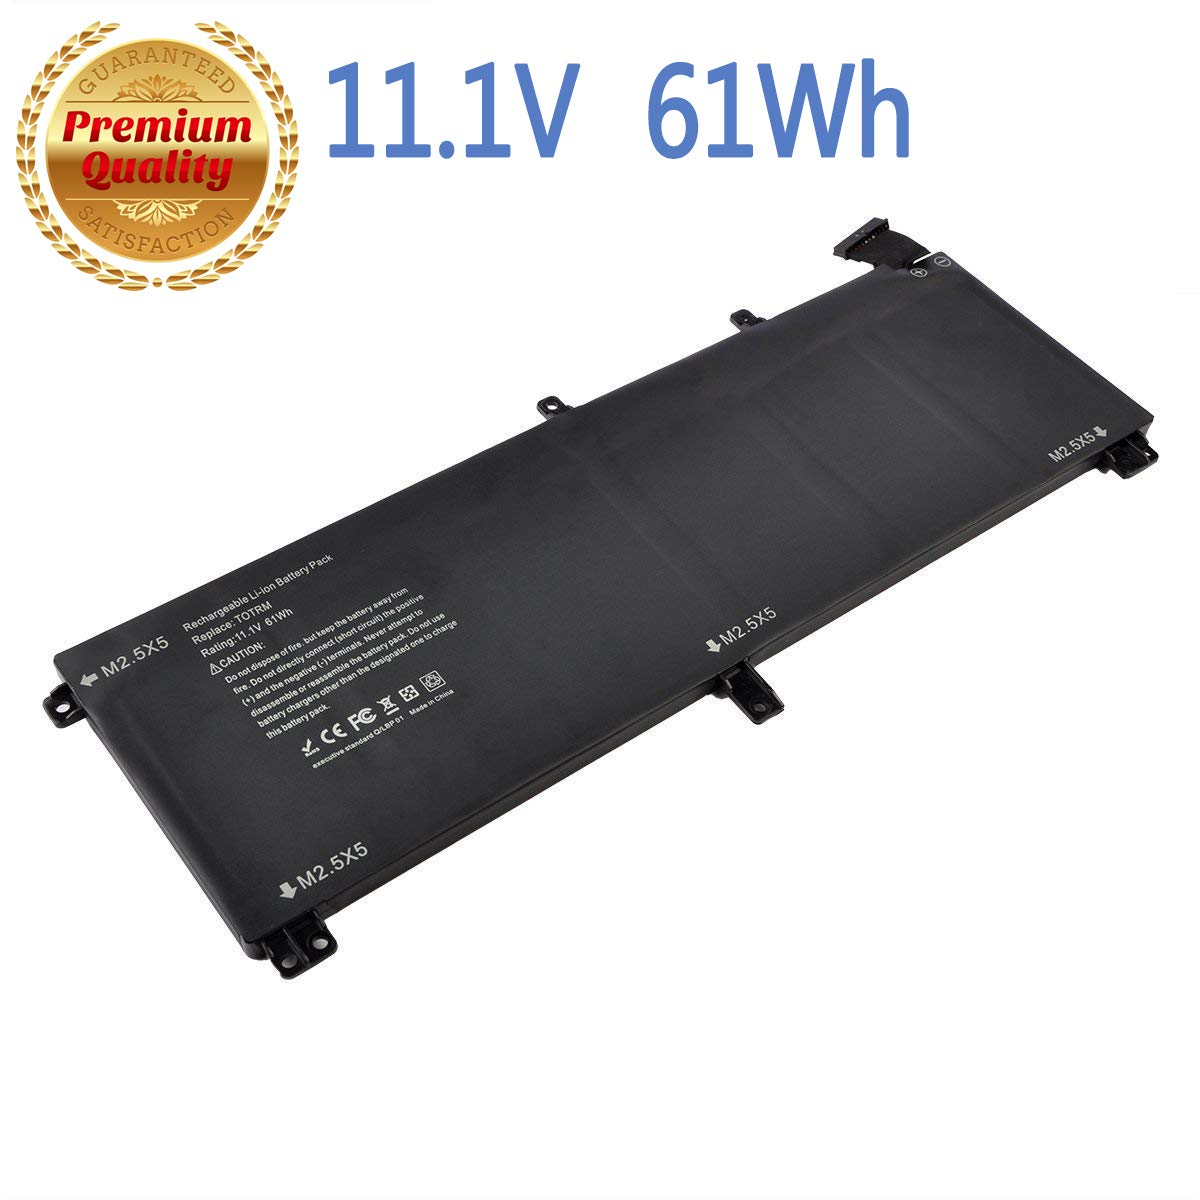 T0TRM, 245RR Laptop Battery Compatible with Dell XPS 15 9530,Precision M3800 Series[Li-Polymer 61WH 11.1V] -18 Months Warranty